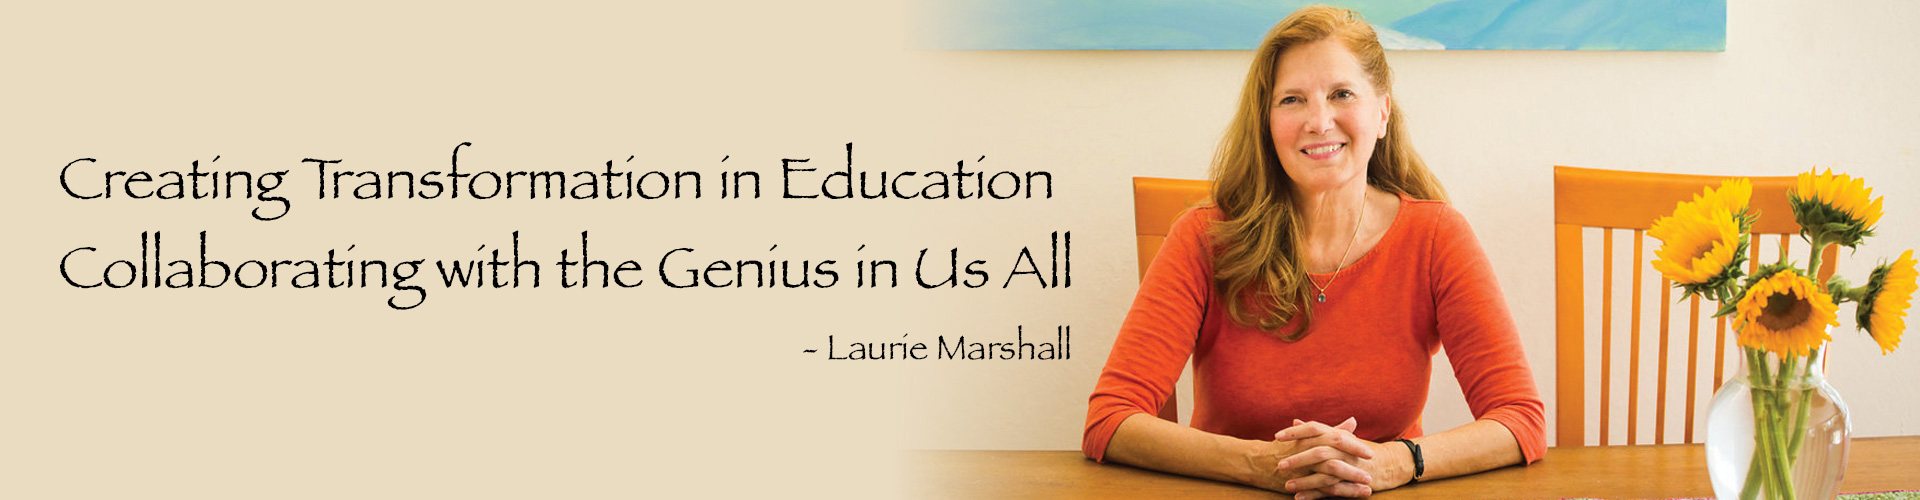 laurie-marshall-home-banner